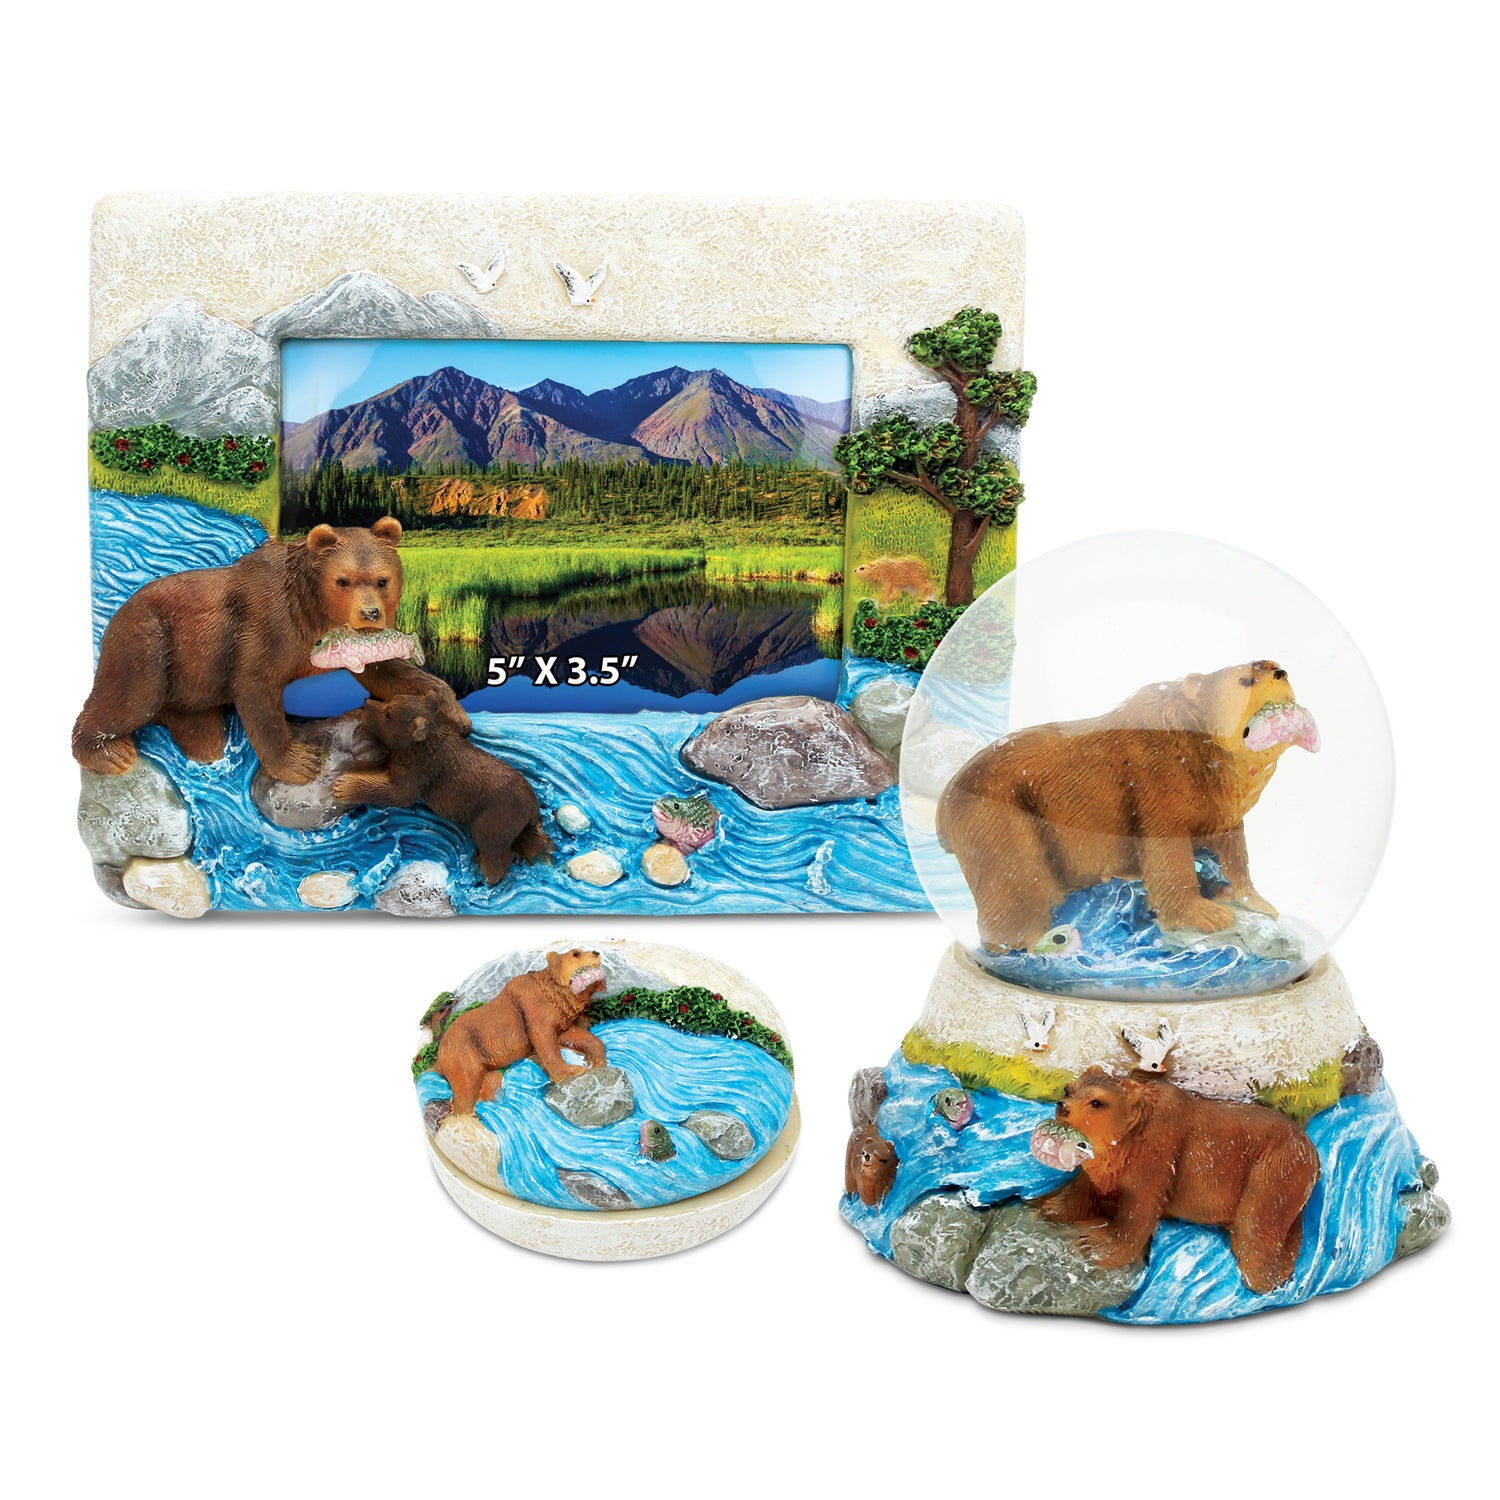 0cd5be3cd6425 Shop Home Decor Value Pack Grizzly Bear Resin Stone collection - Set ...